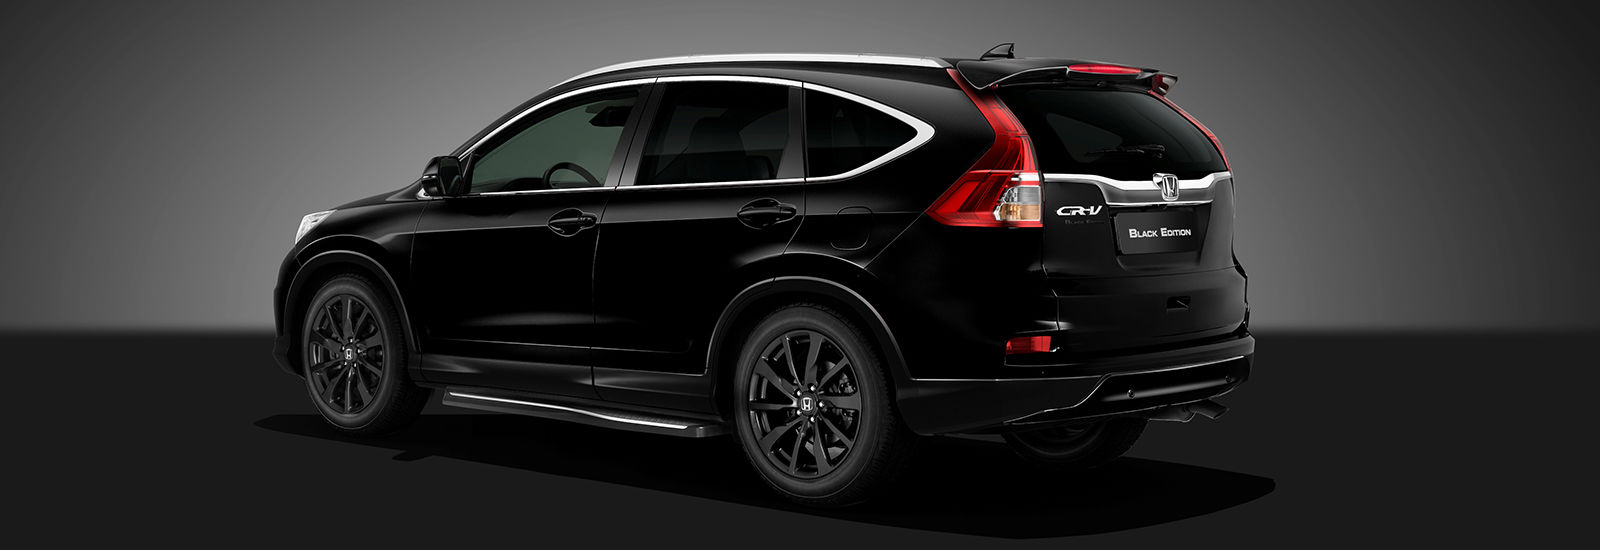 Honda Civic Limited Edition Amp Cr V Black Edition Carwow